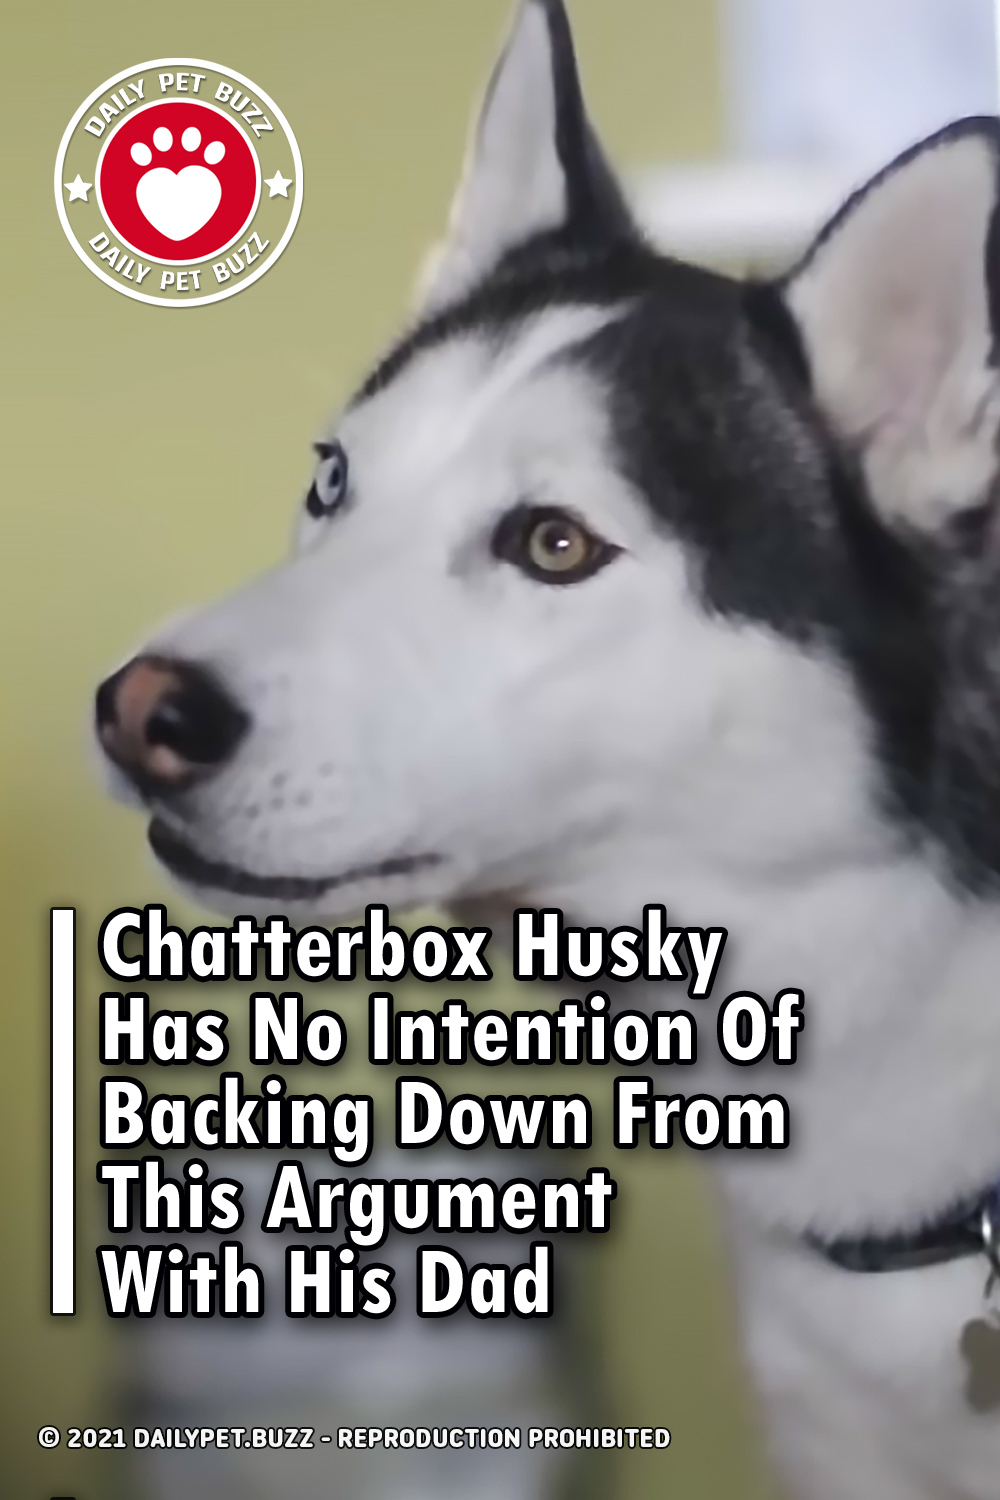 Chatterbox Husky Has No Intention Of Backing Down From This Argument With His Dad